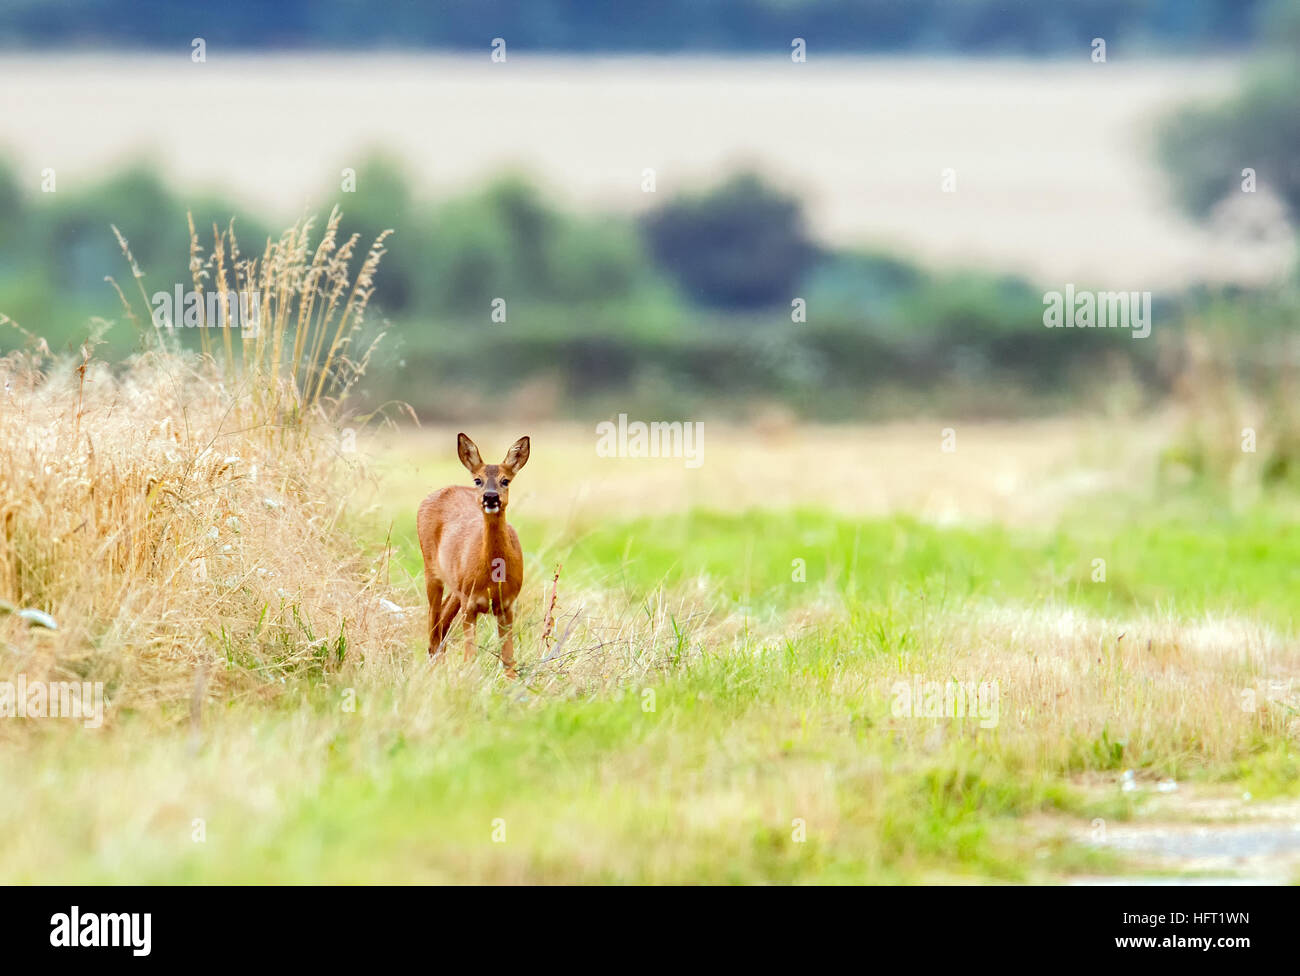 Roe Deer female grasing at the side of a disused section of airfield. - Stock Image